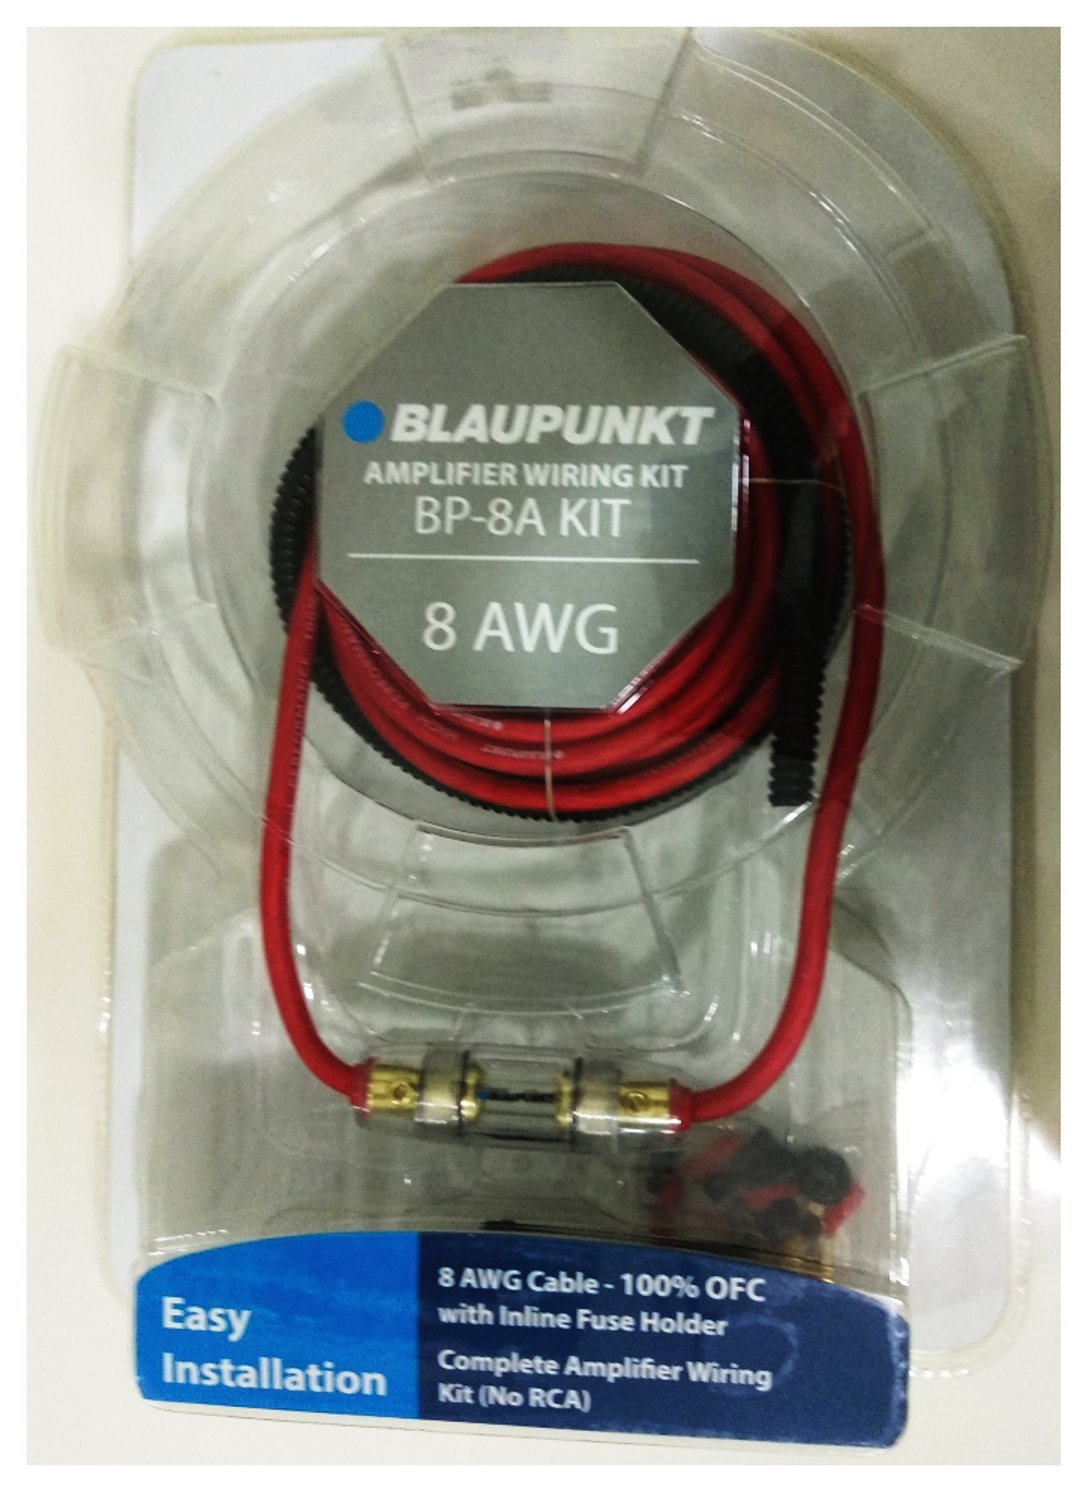 Blaupunkt BP-4A 4 Gauge Amplifier Wiring Kit (100% OFC)